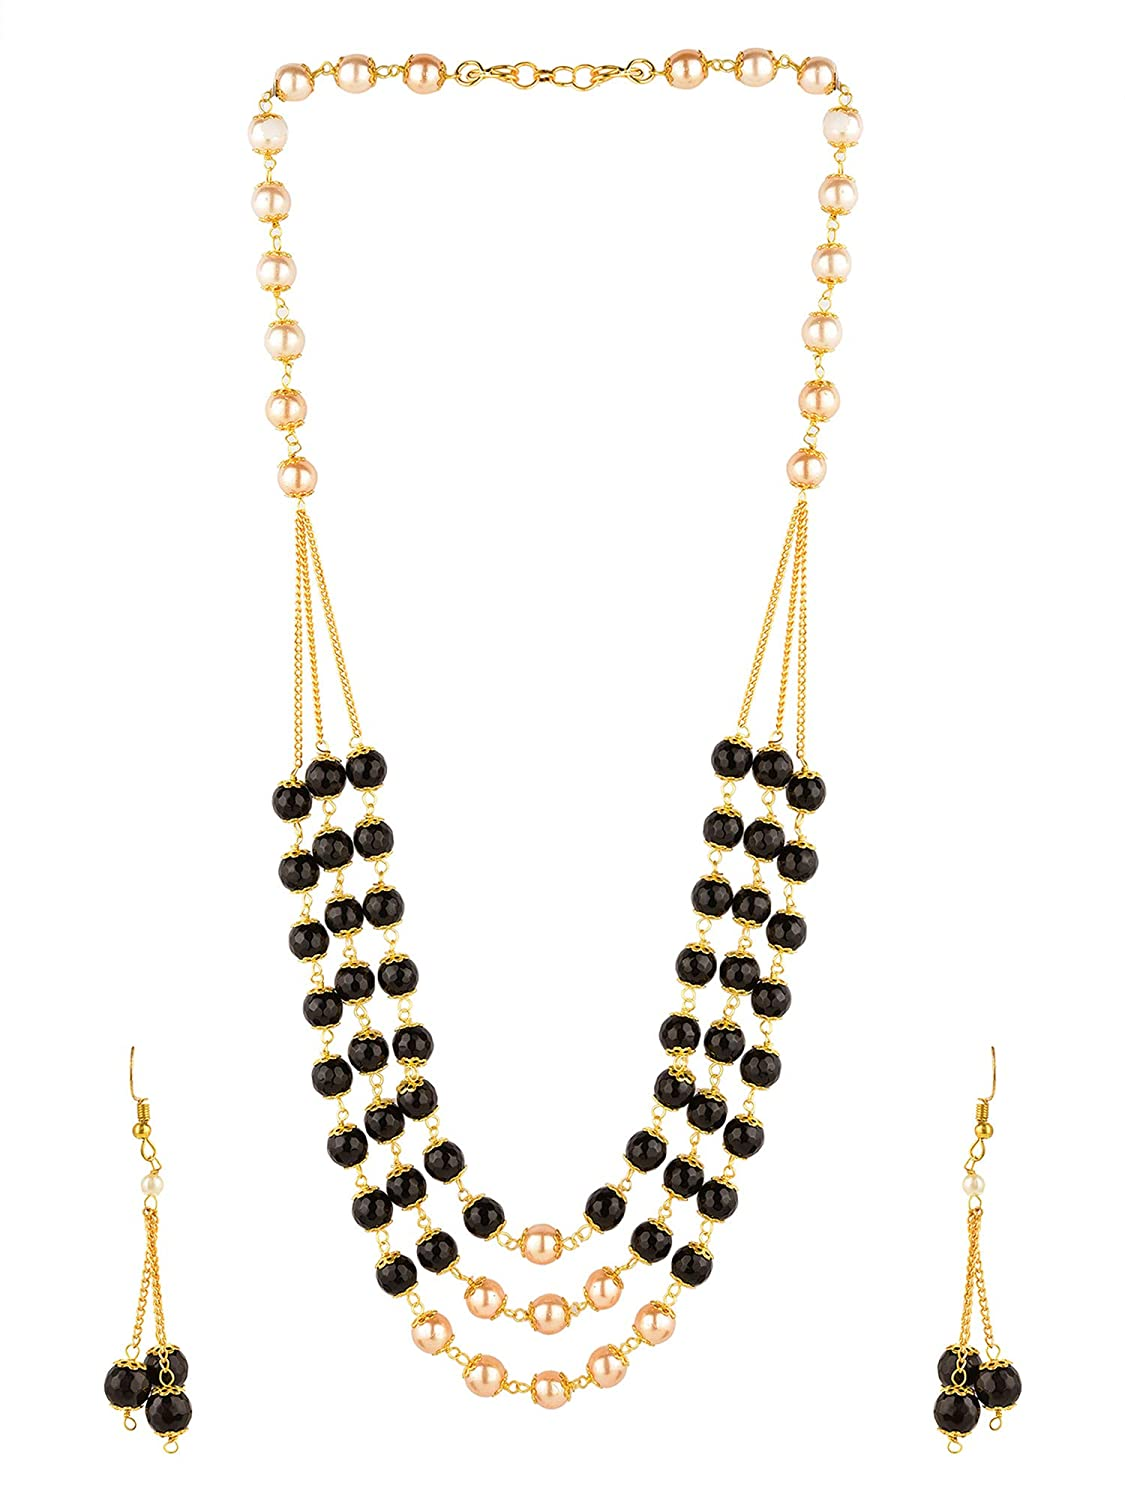 53f51db62 Amazon.com: Efulgenz Indian Bollywood Multi Layered Faux Pearl Beads Bridal  Necklace Earrings Wedding Jewelry Set: Jewelry